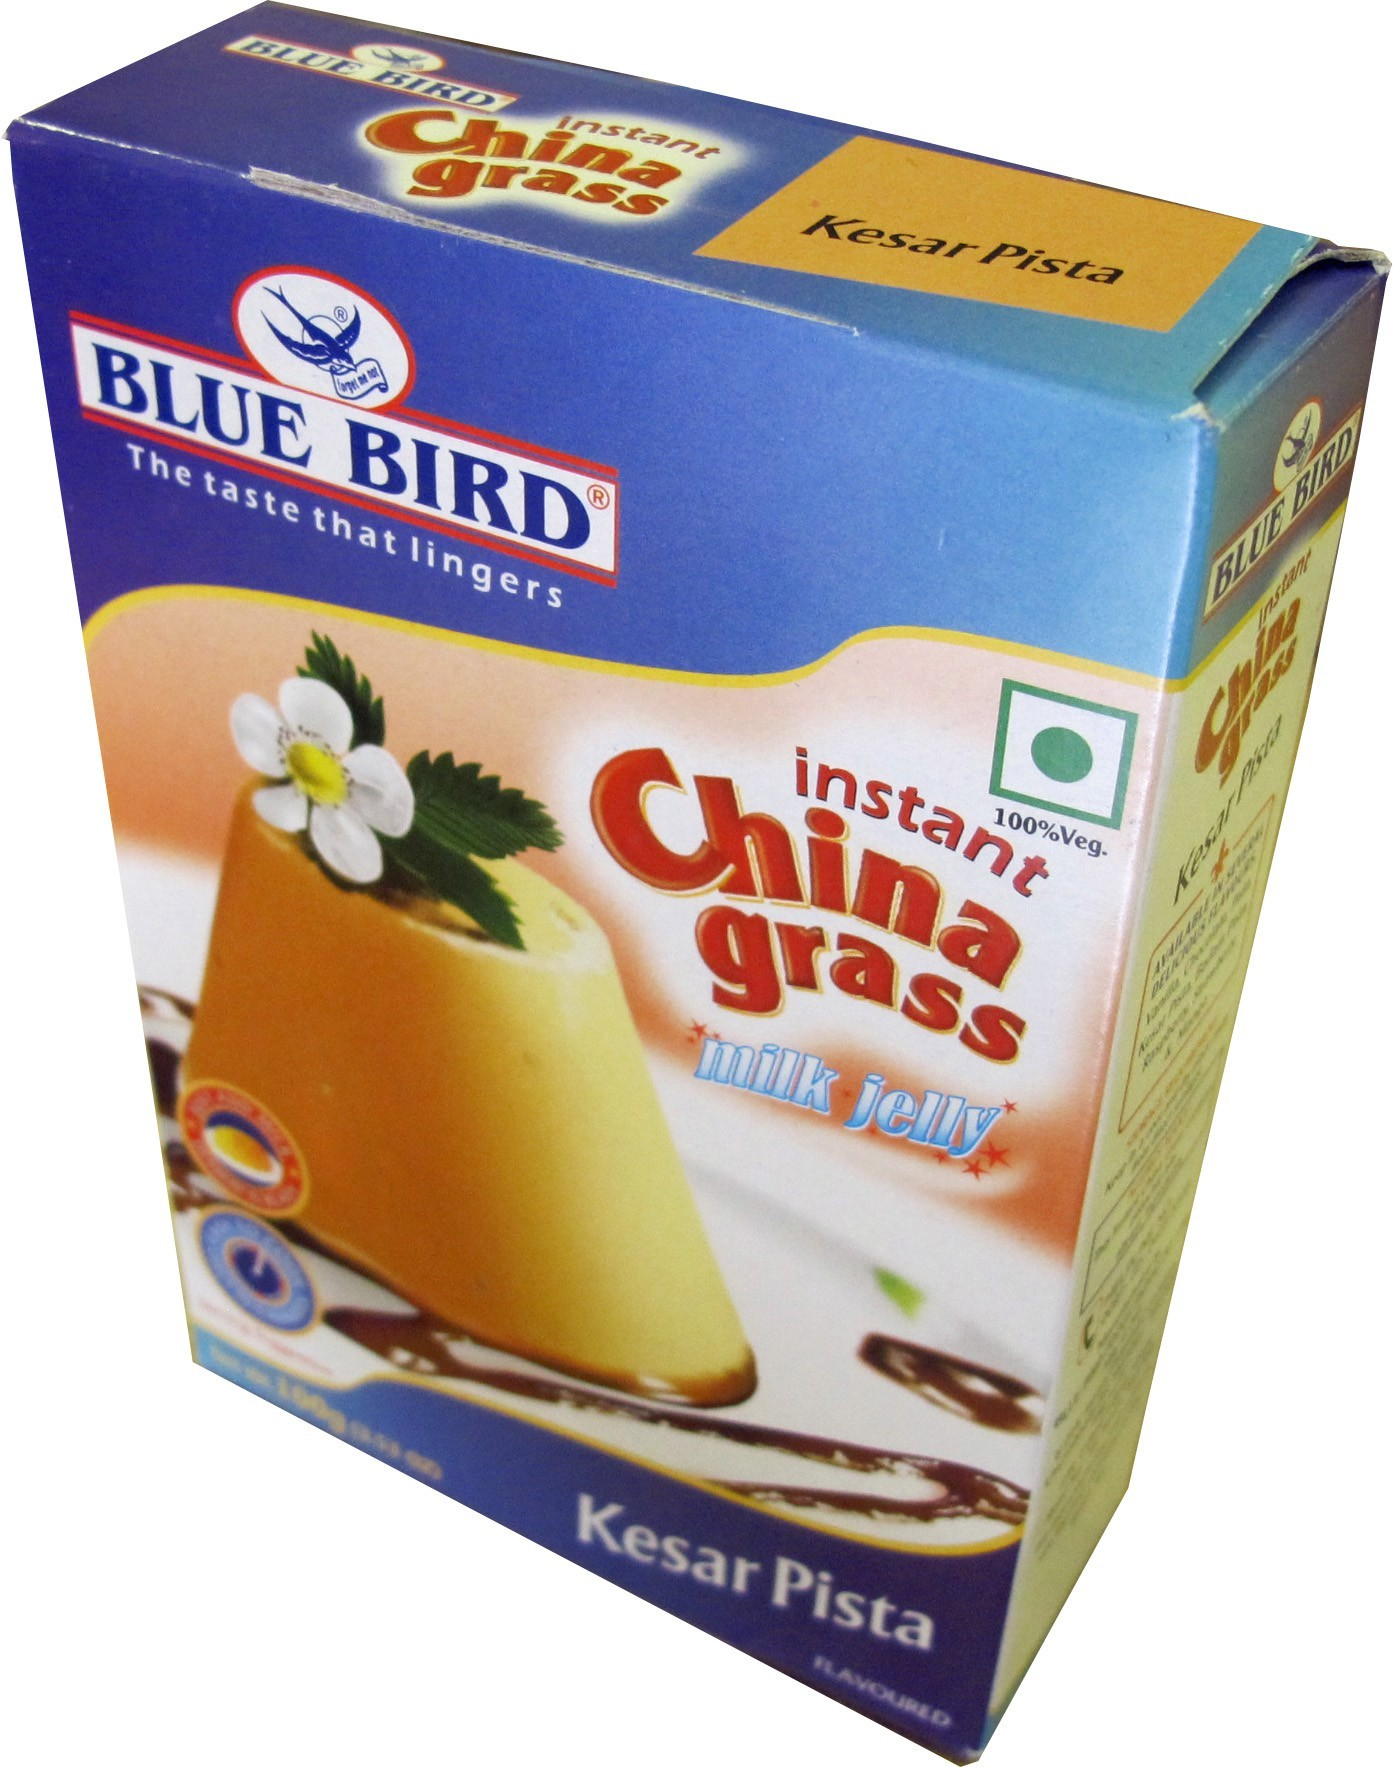 Blue Bird - Chinagrass Kesar Pista